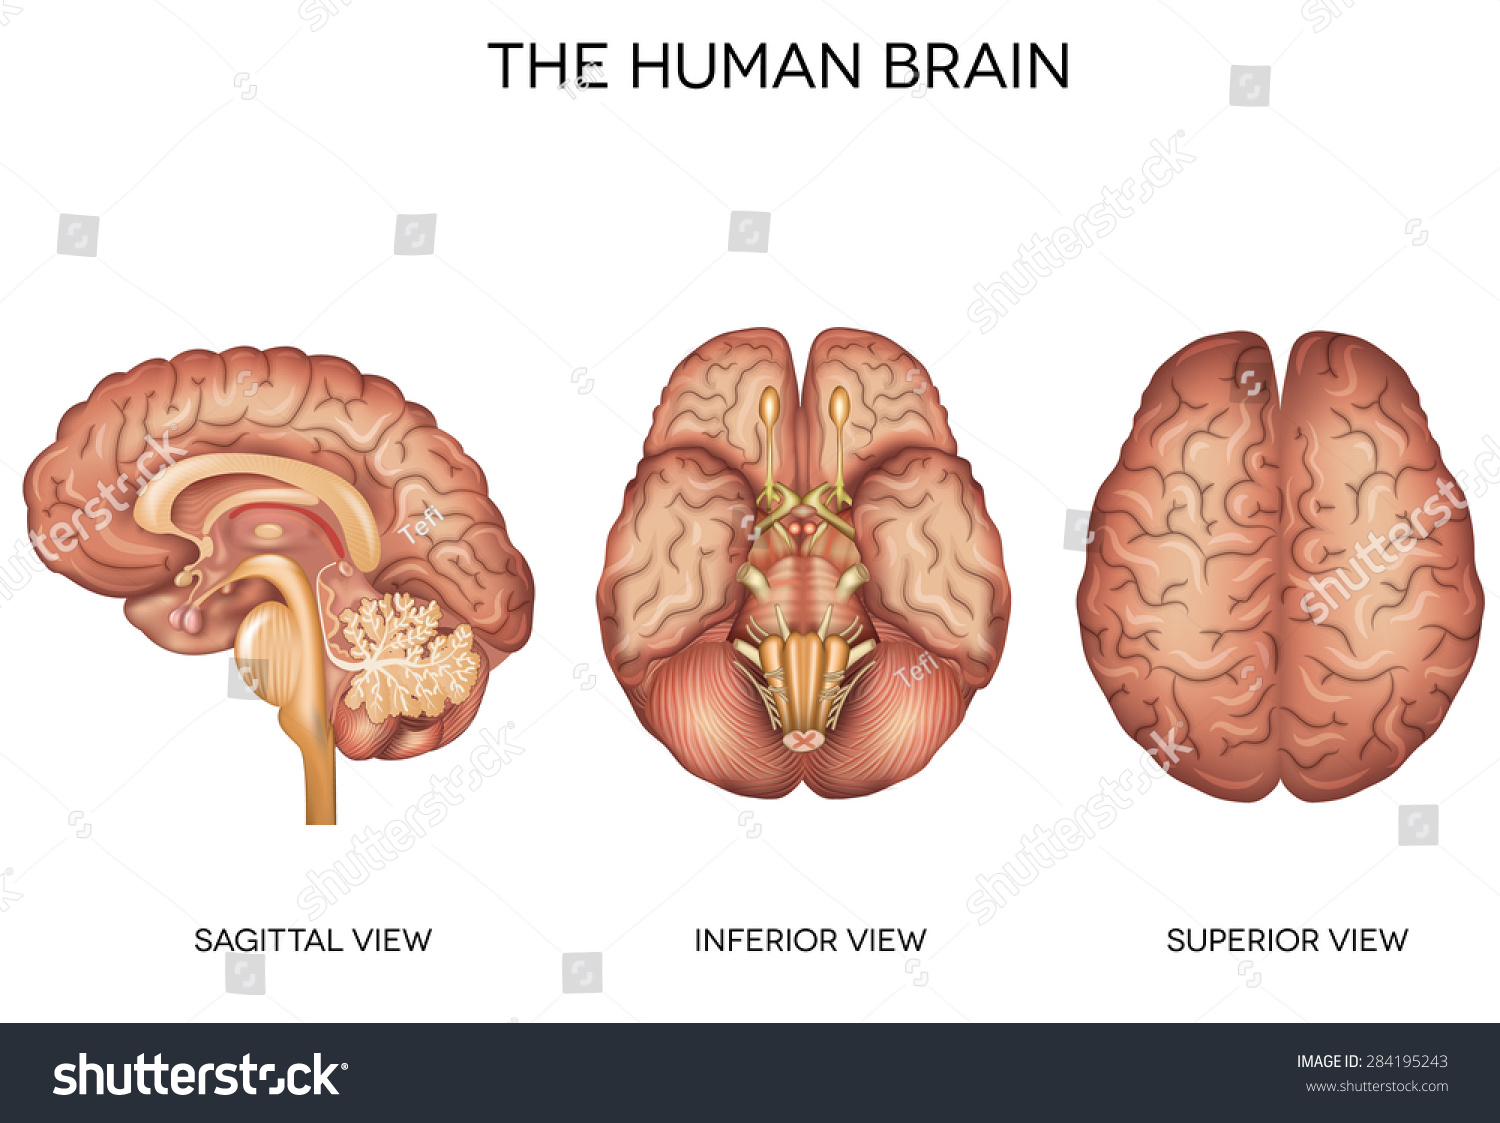 Royalty Free Stock Illustration Of Human Brain Detailed Anatomy